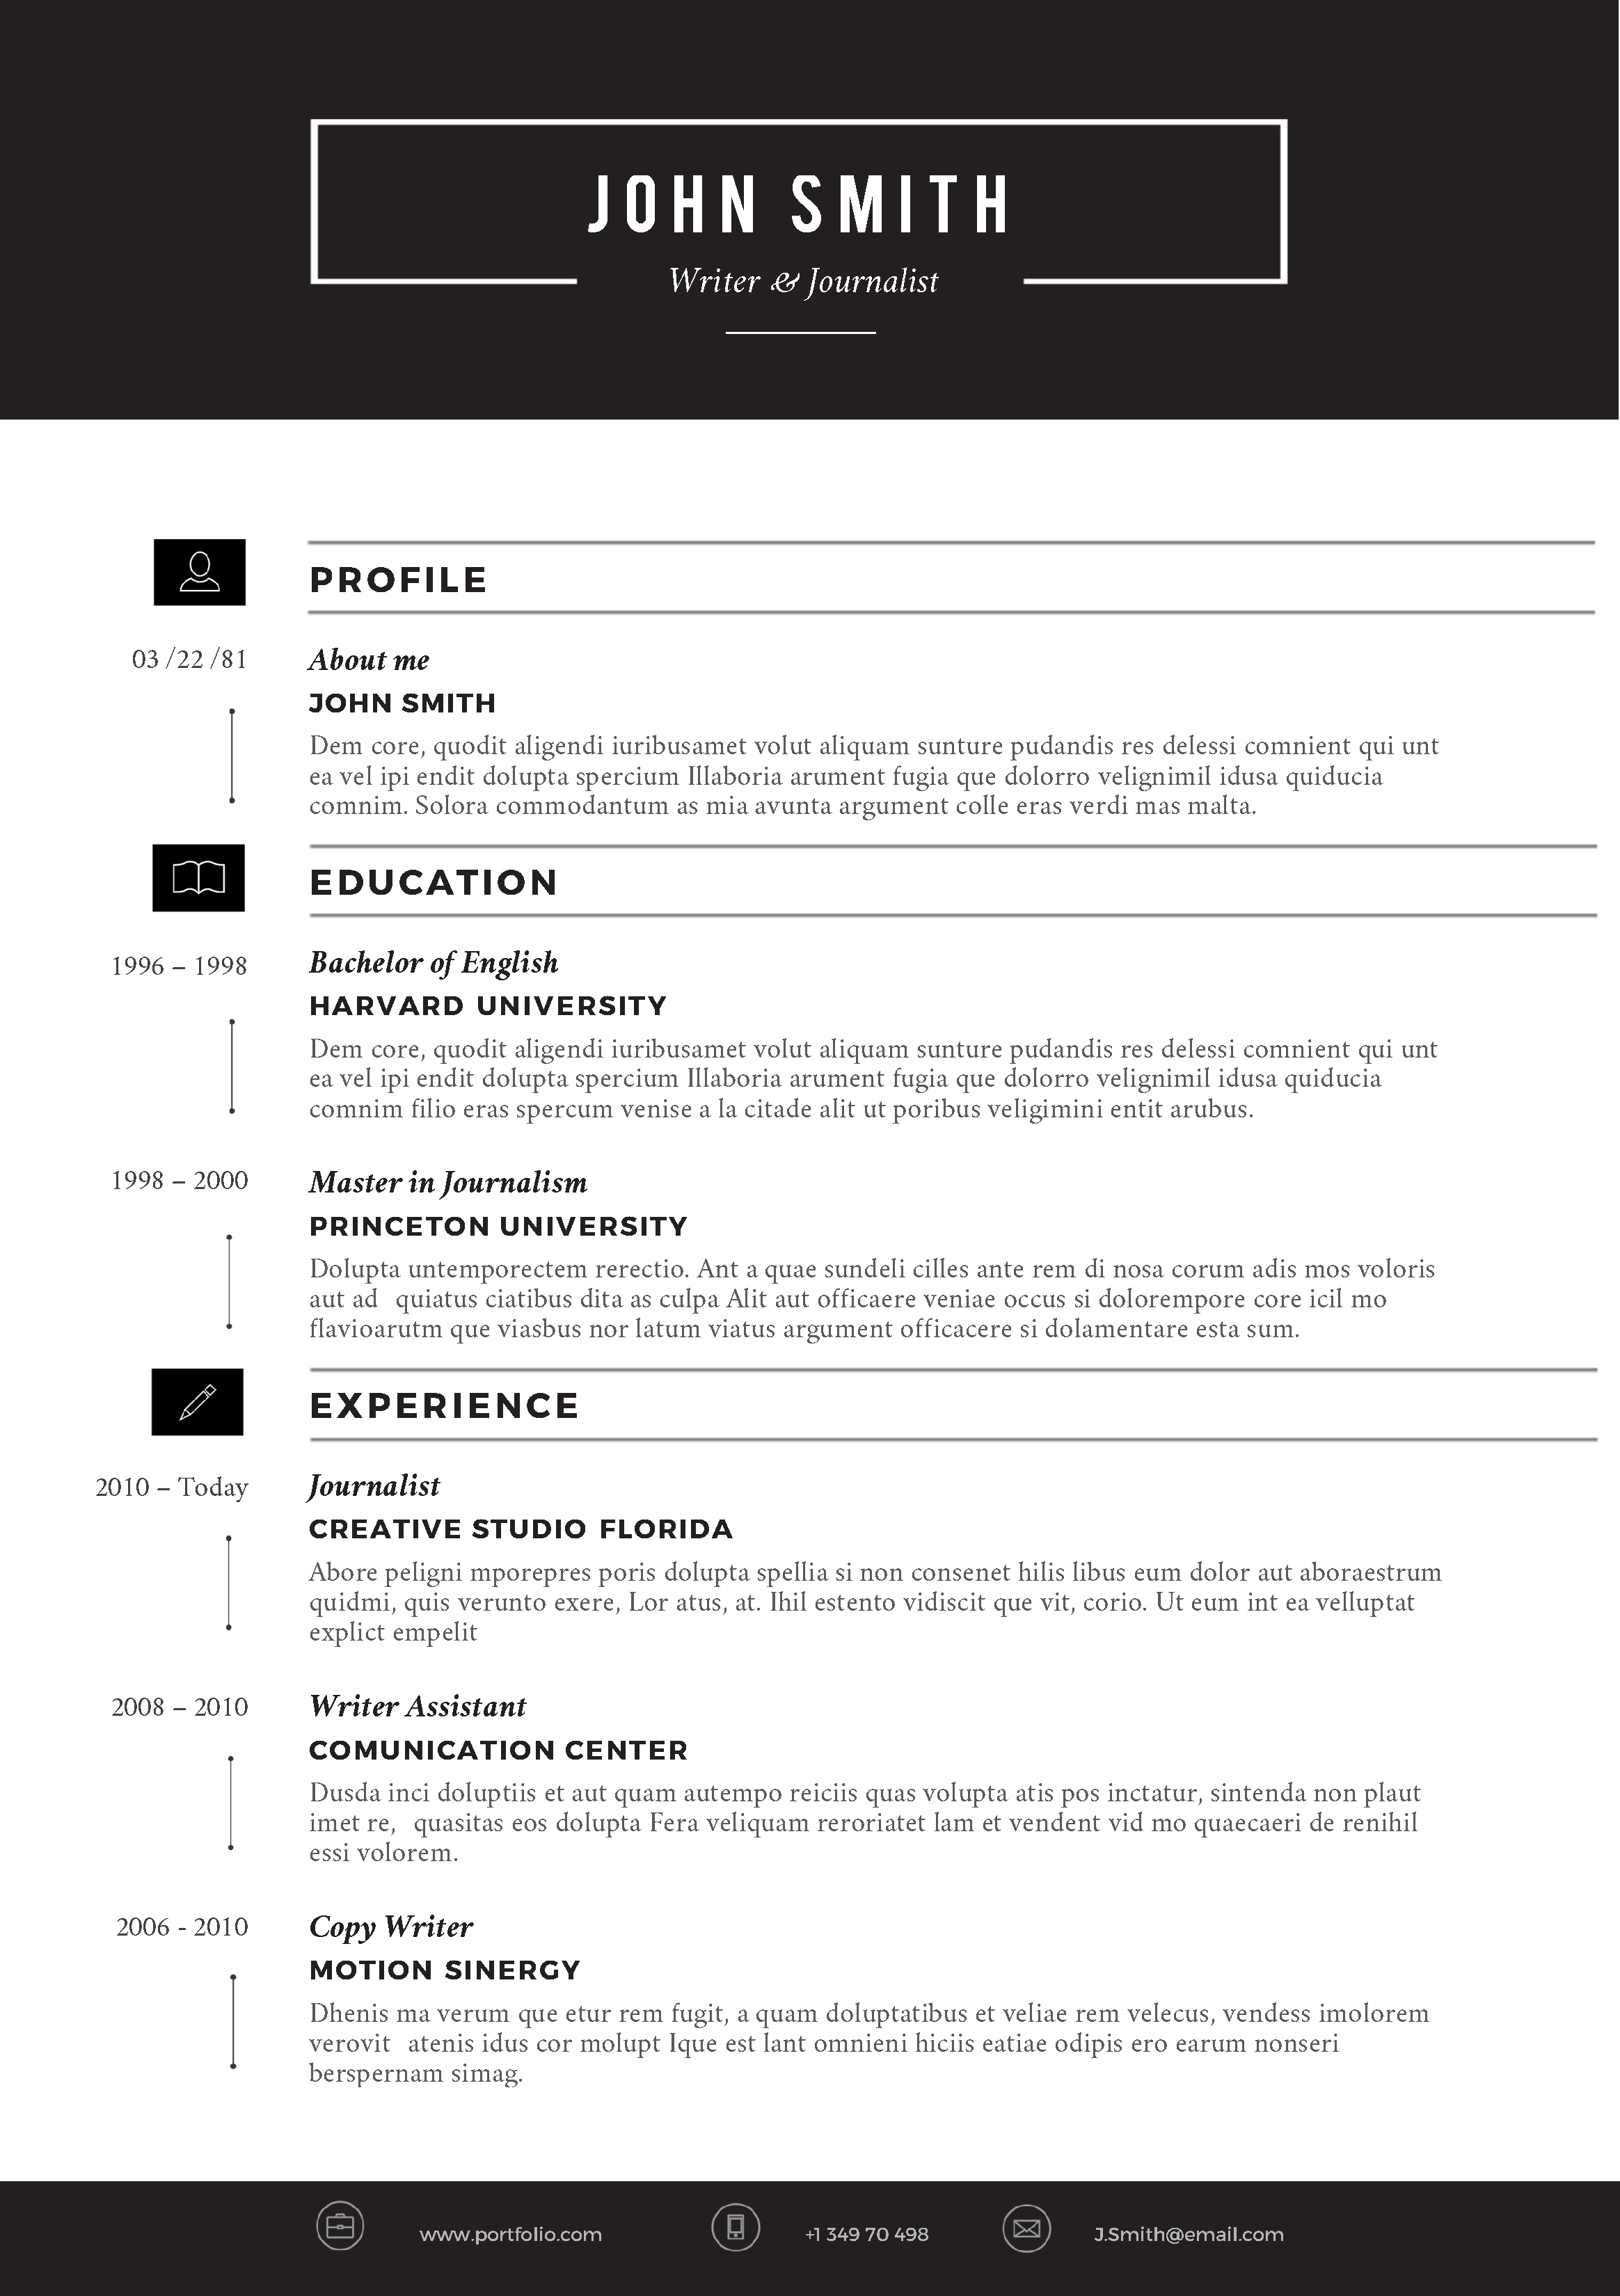 professional resume template microsoft word resume professional resume template microsoft word resume templates 412 examples resume builder cvfolio best 10